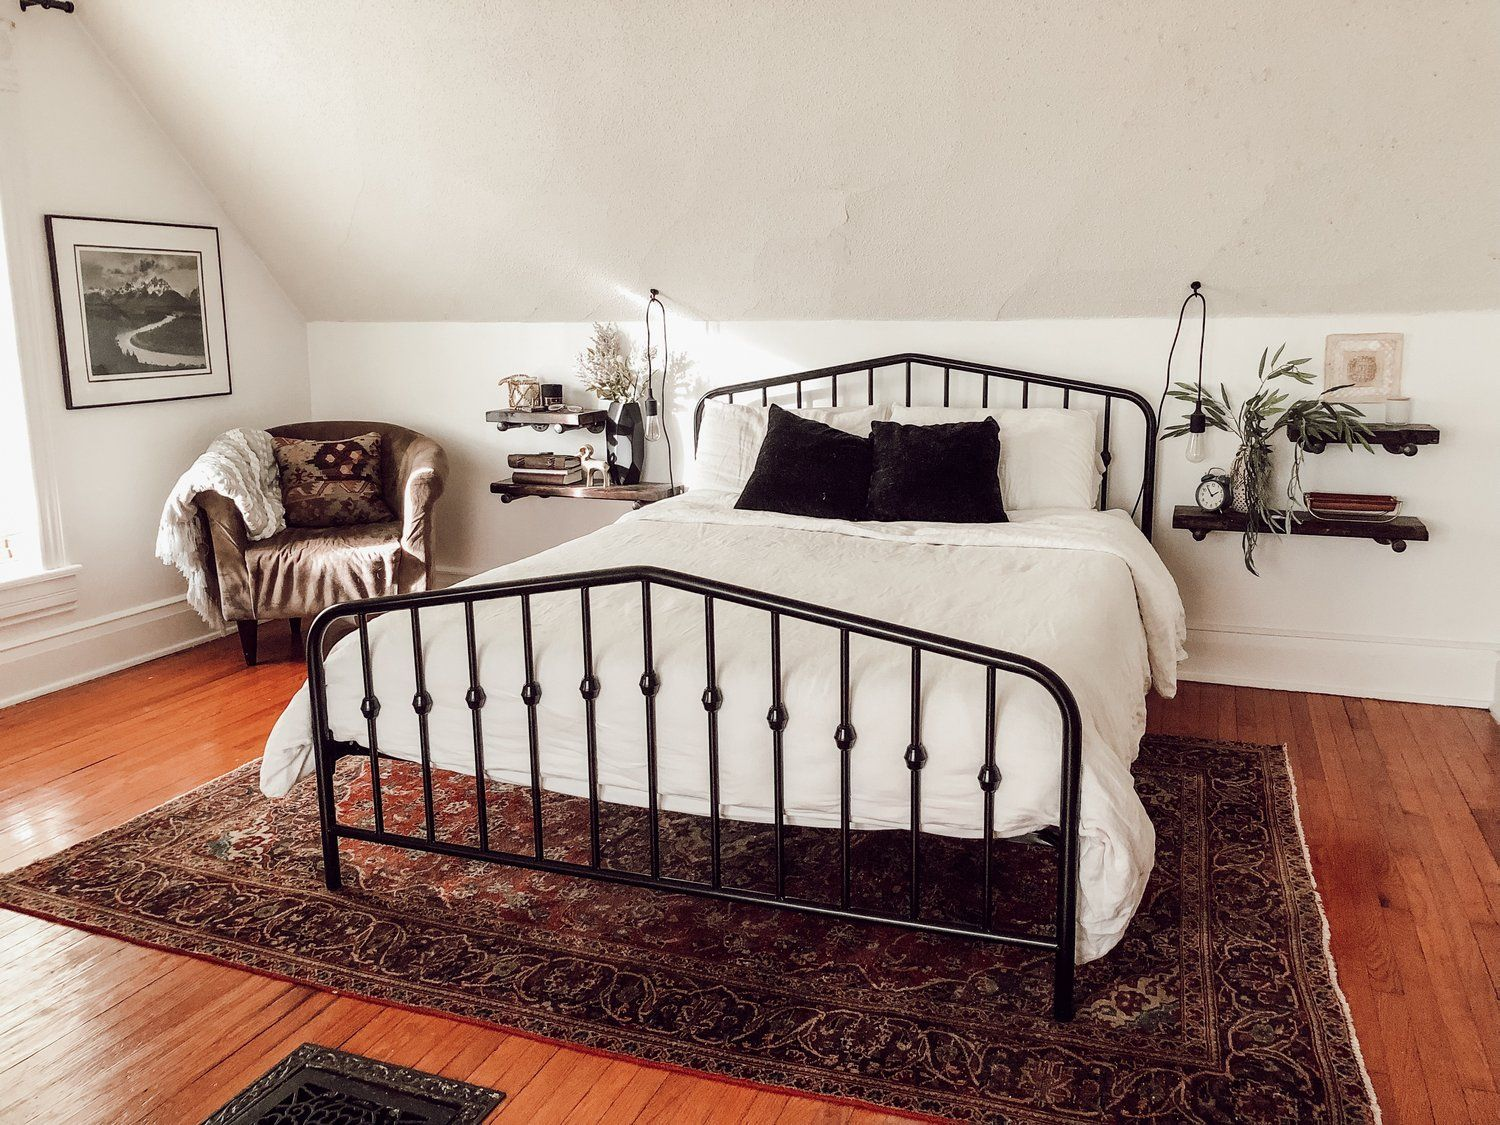 Love The Minimalist Design Of This Bedroom The Persian Rug And